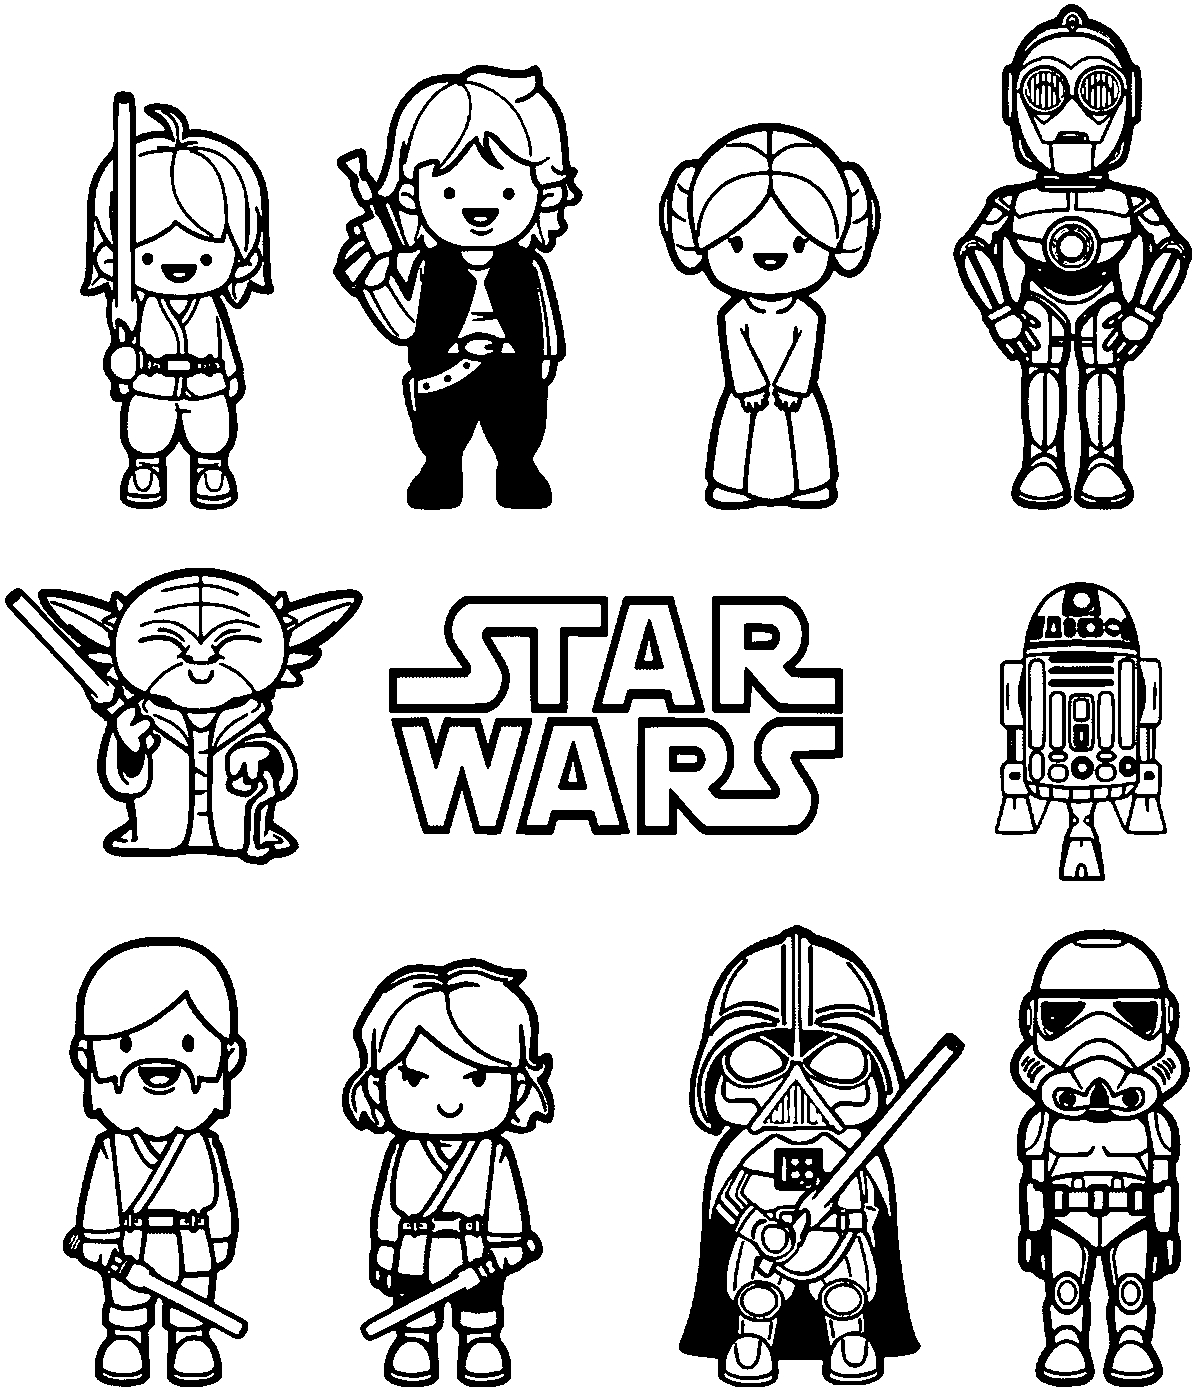 stormtrooper coloring pages best coloring pages for kids stormtrooper coloring pages best